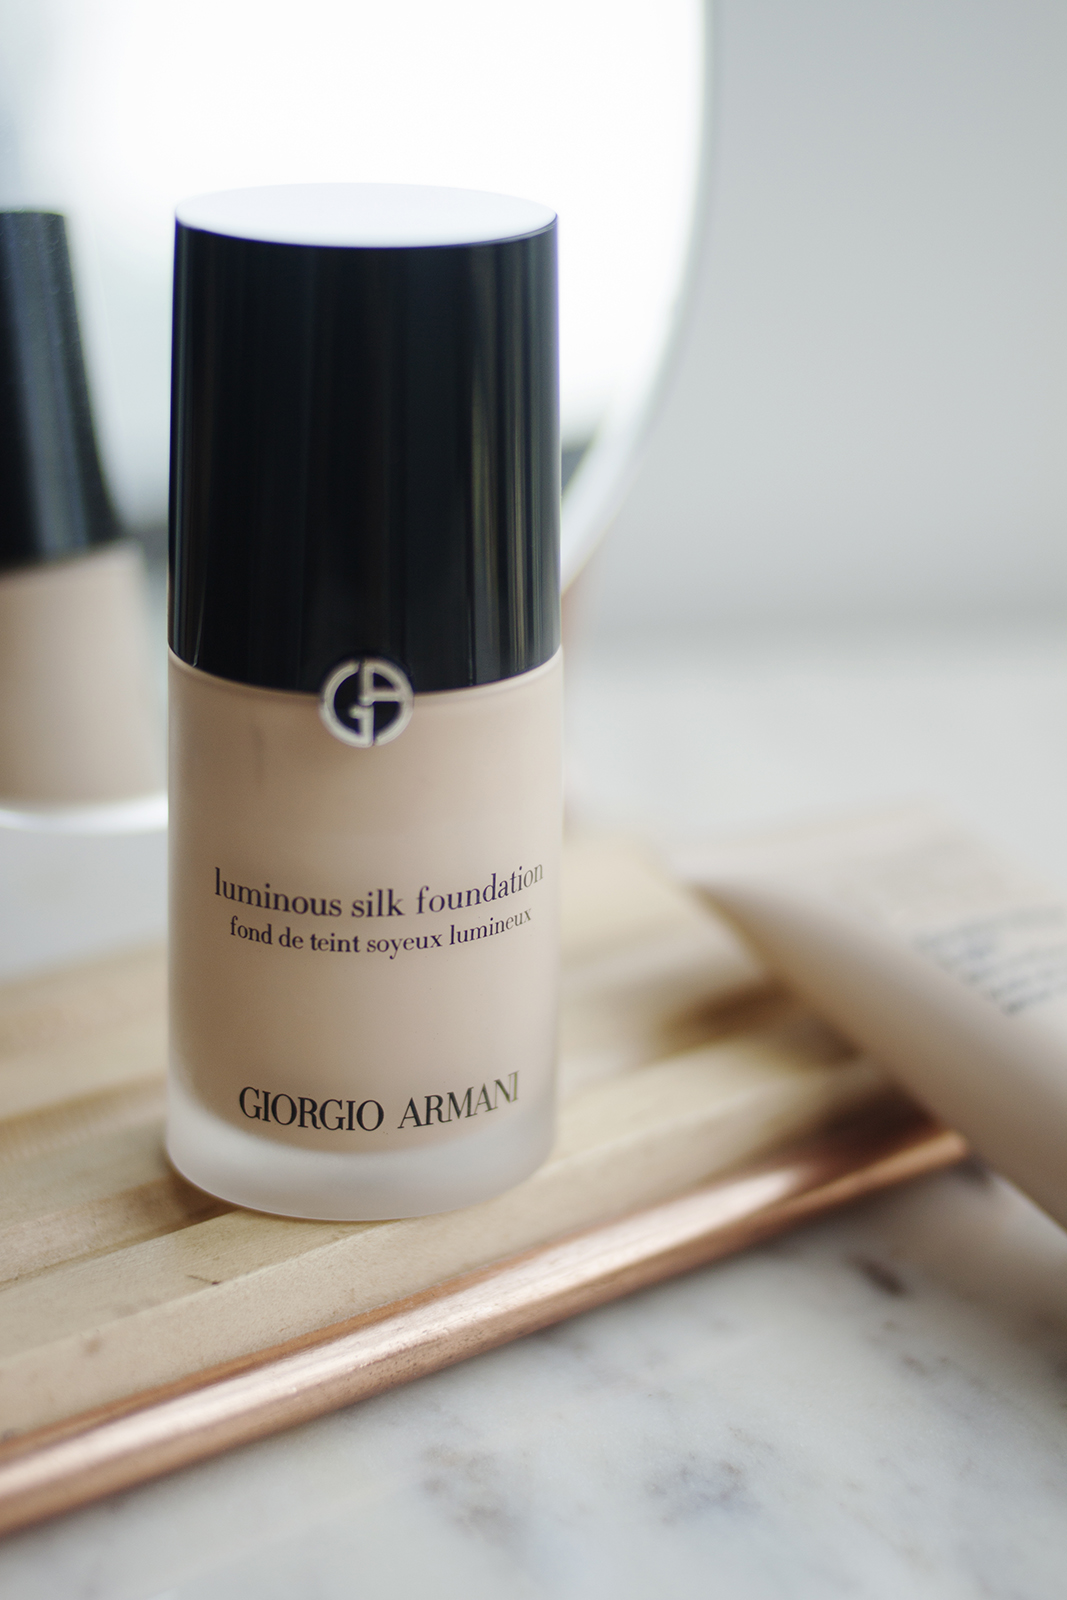 """- While I try not to save makeup products for special occasions, and I do use this whenever I feel like it, in my mind I still think of it as my special occasion foundation because I always reach for it when I want to feel really good. The first time I tried the Giorgio Armani Luminous Silk Foundation (AU) in Shade 2, I immediately understood why it's such a makeup artist favourite and why to this day it still gets so much love online.Again, it's not the best for oily skin, it's not particularly long lasting on its own, but the finish is just so beautiful that it's worth the extra effort for me. I have never put this on my face and been disappointed with how it looks. They released what I believe is supposed to be a longer wearing version called the Power Fabric Foundation, but I tried a sample of it and didn't think it was as beautiful as Luminous Silk, so I'm sticking with the original.It has a decent medium coverage (more than the Bourjois) and could be built up a bit more if that's what you're feeling. But the bottom line is that it looks very natural and beautiful on the skin – definitely a """"your skin but better"""" kind of vibe, which is what makes it a forever favourite for me."""